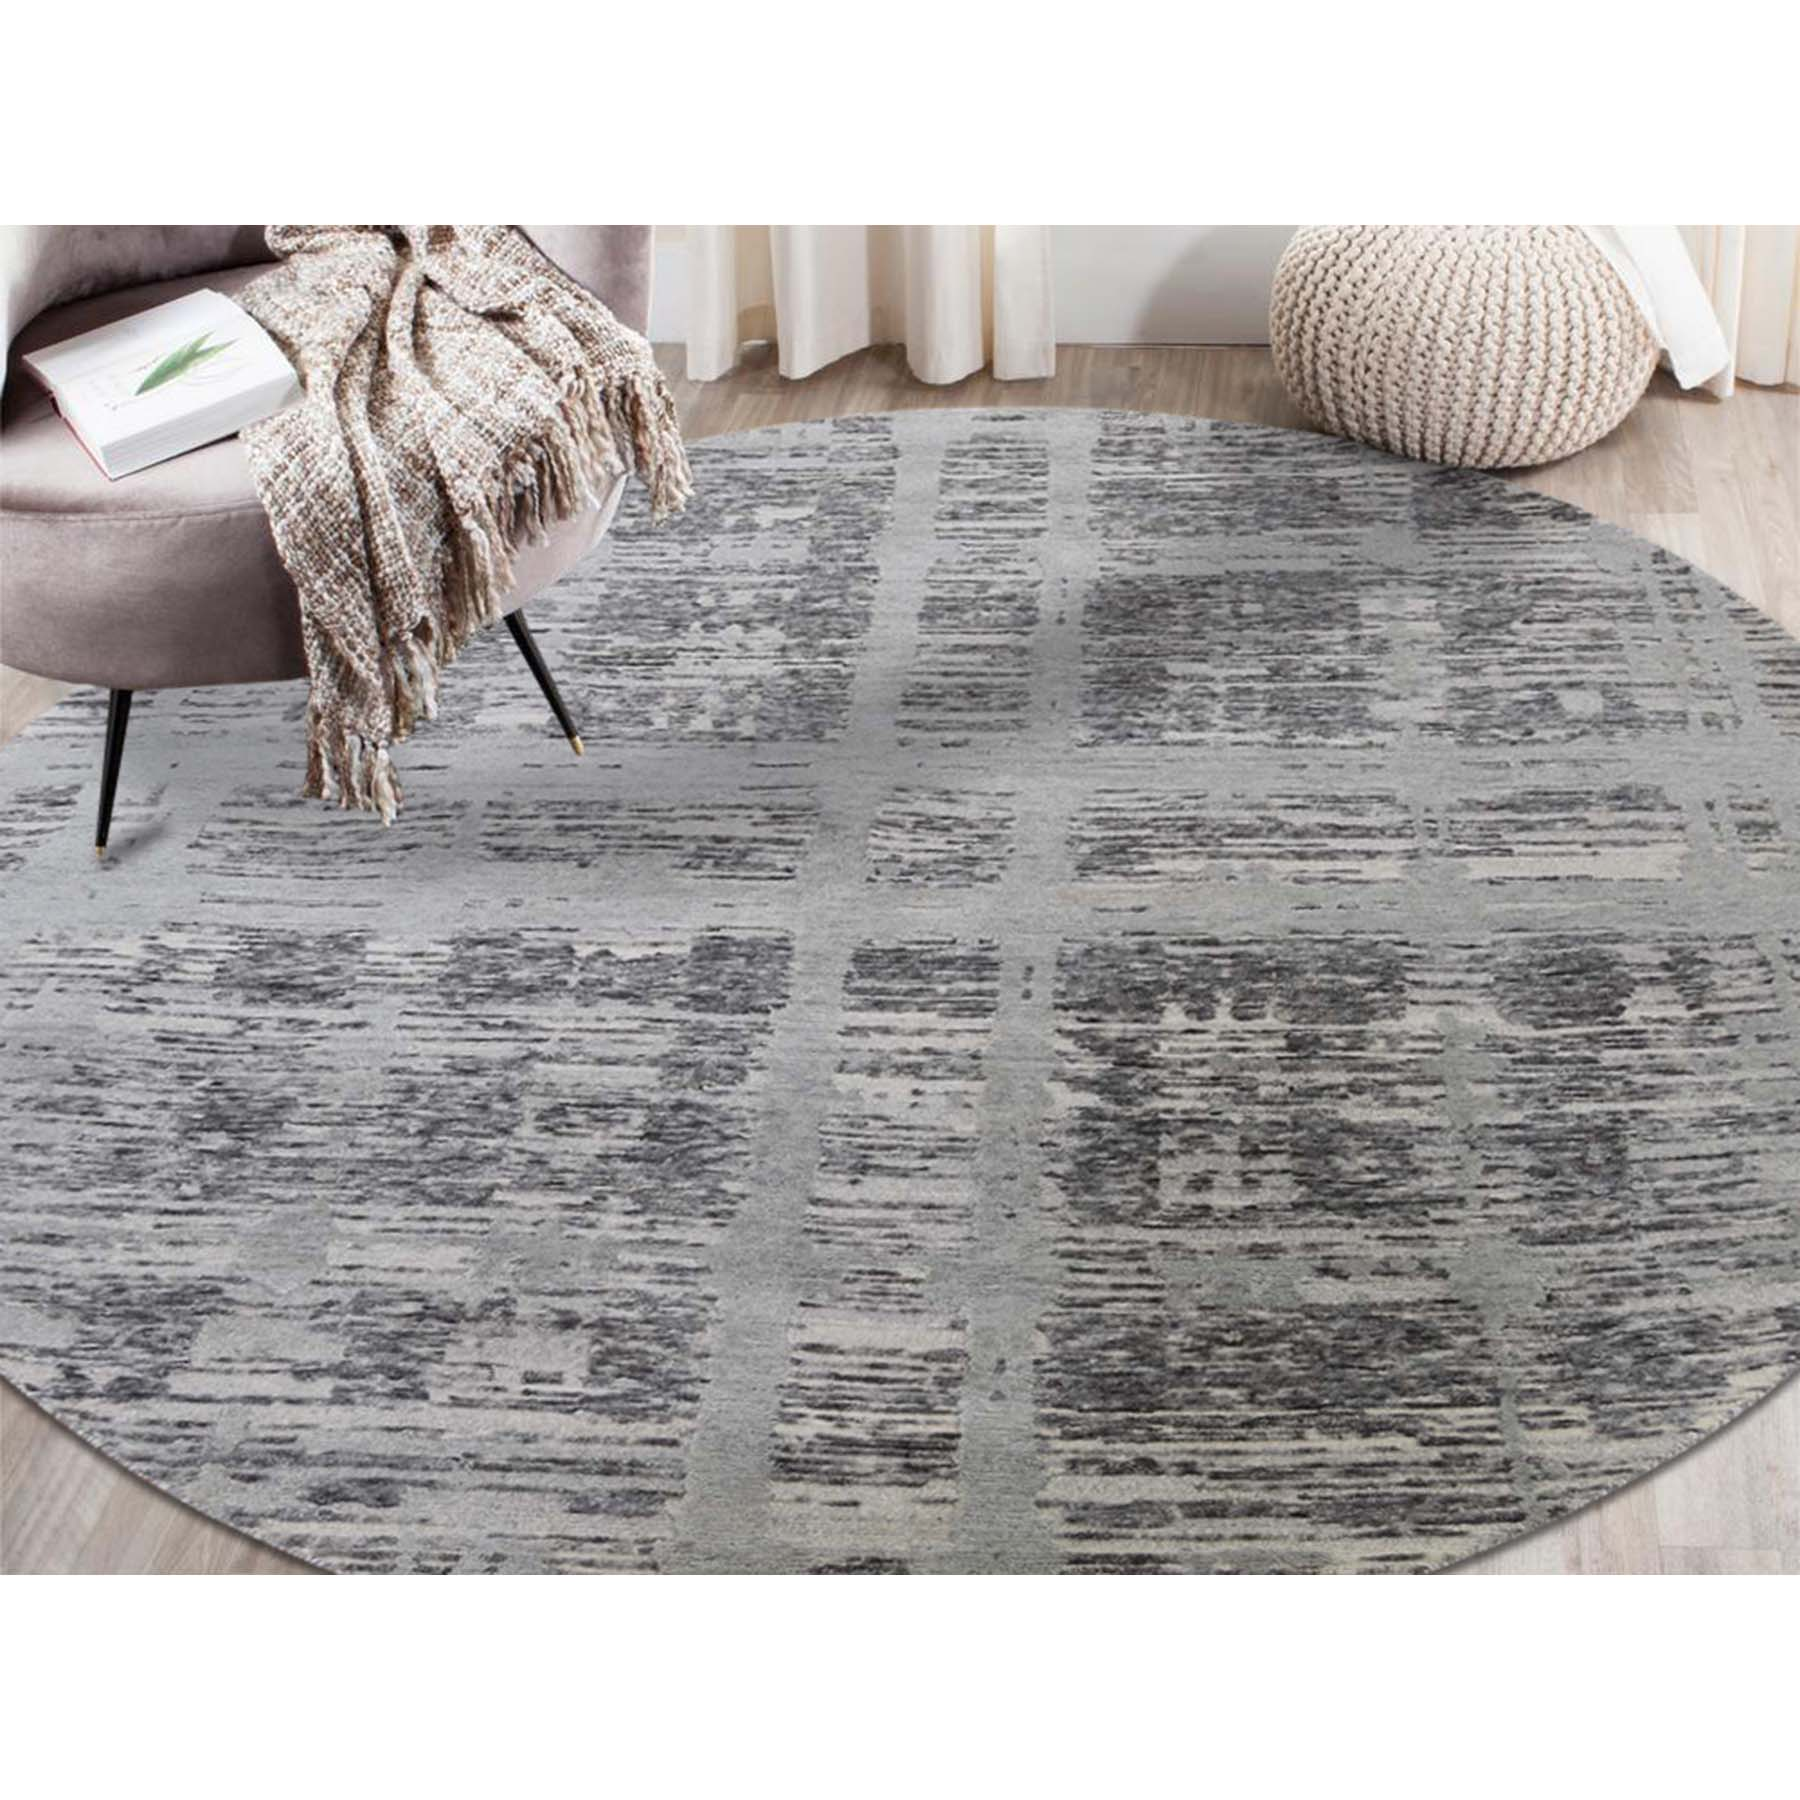 7'x7' Gray Hand Spun Undyed Natural Wool Modern Round Oriental Hand-Knotted Rug